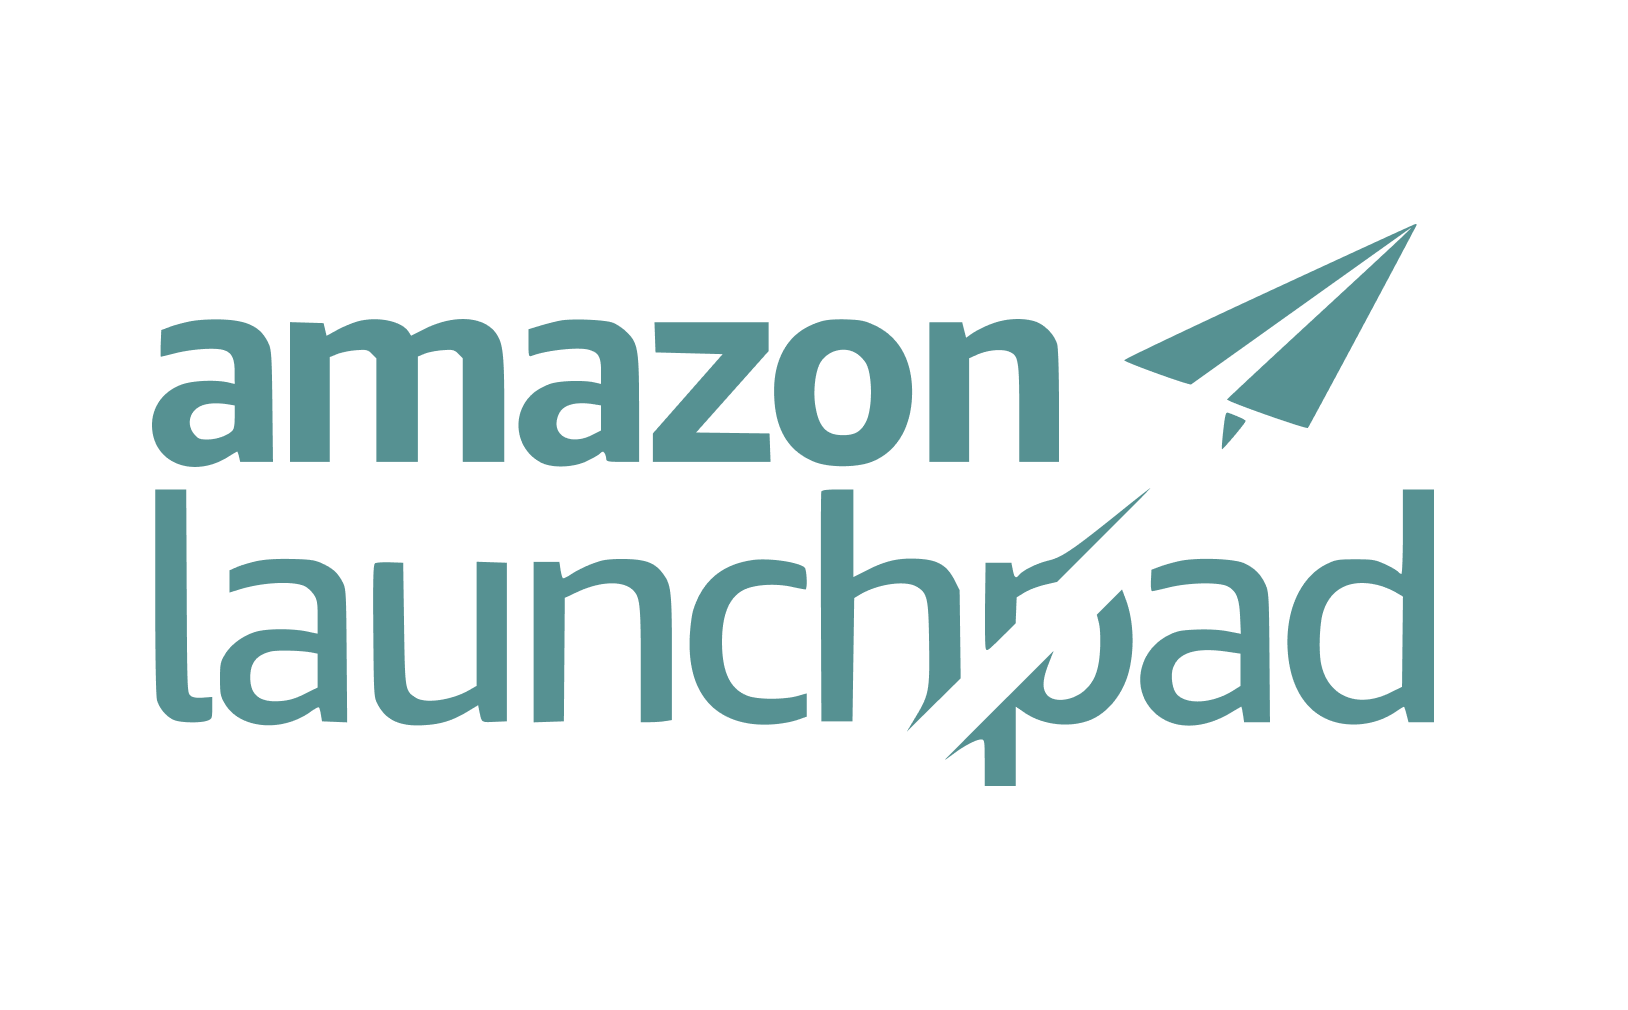 Amazon Launchpad logo featuring a paper plane